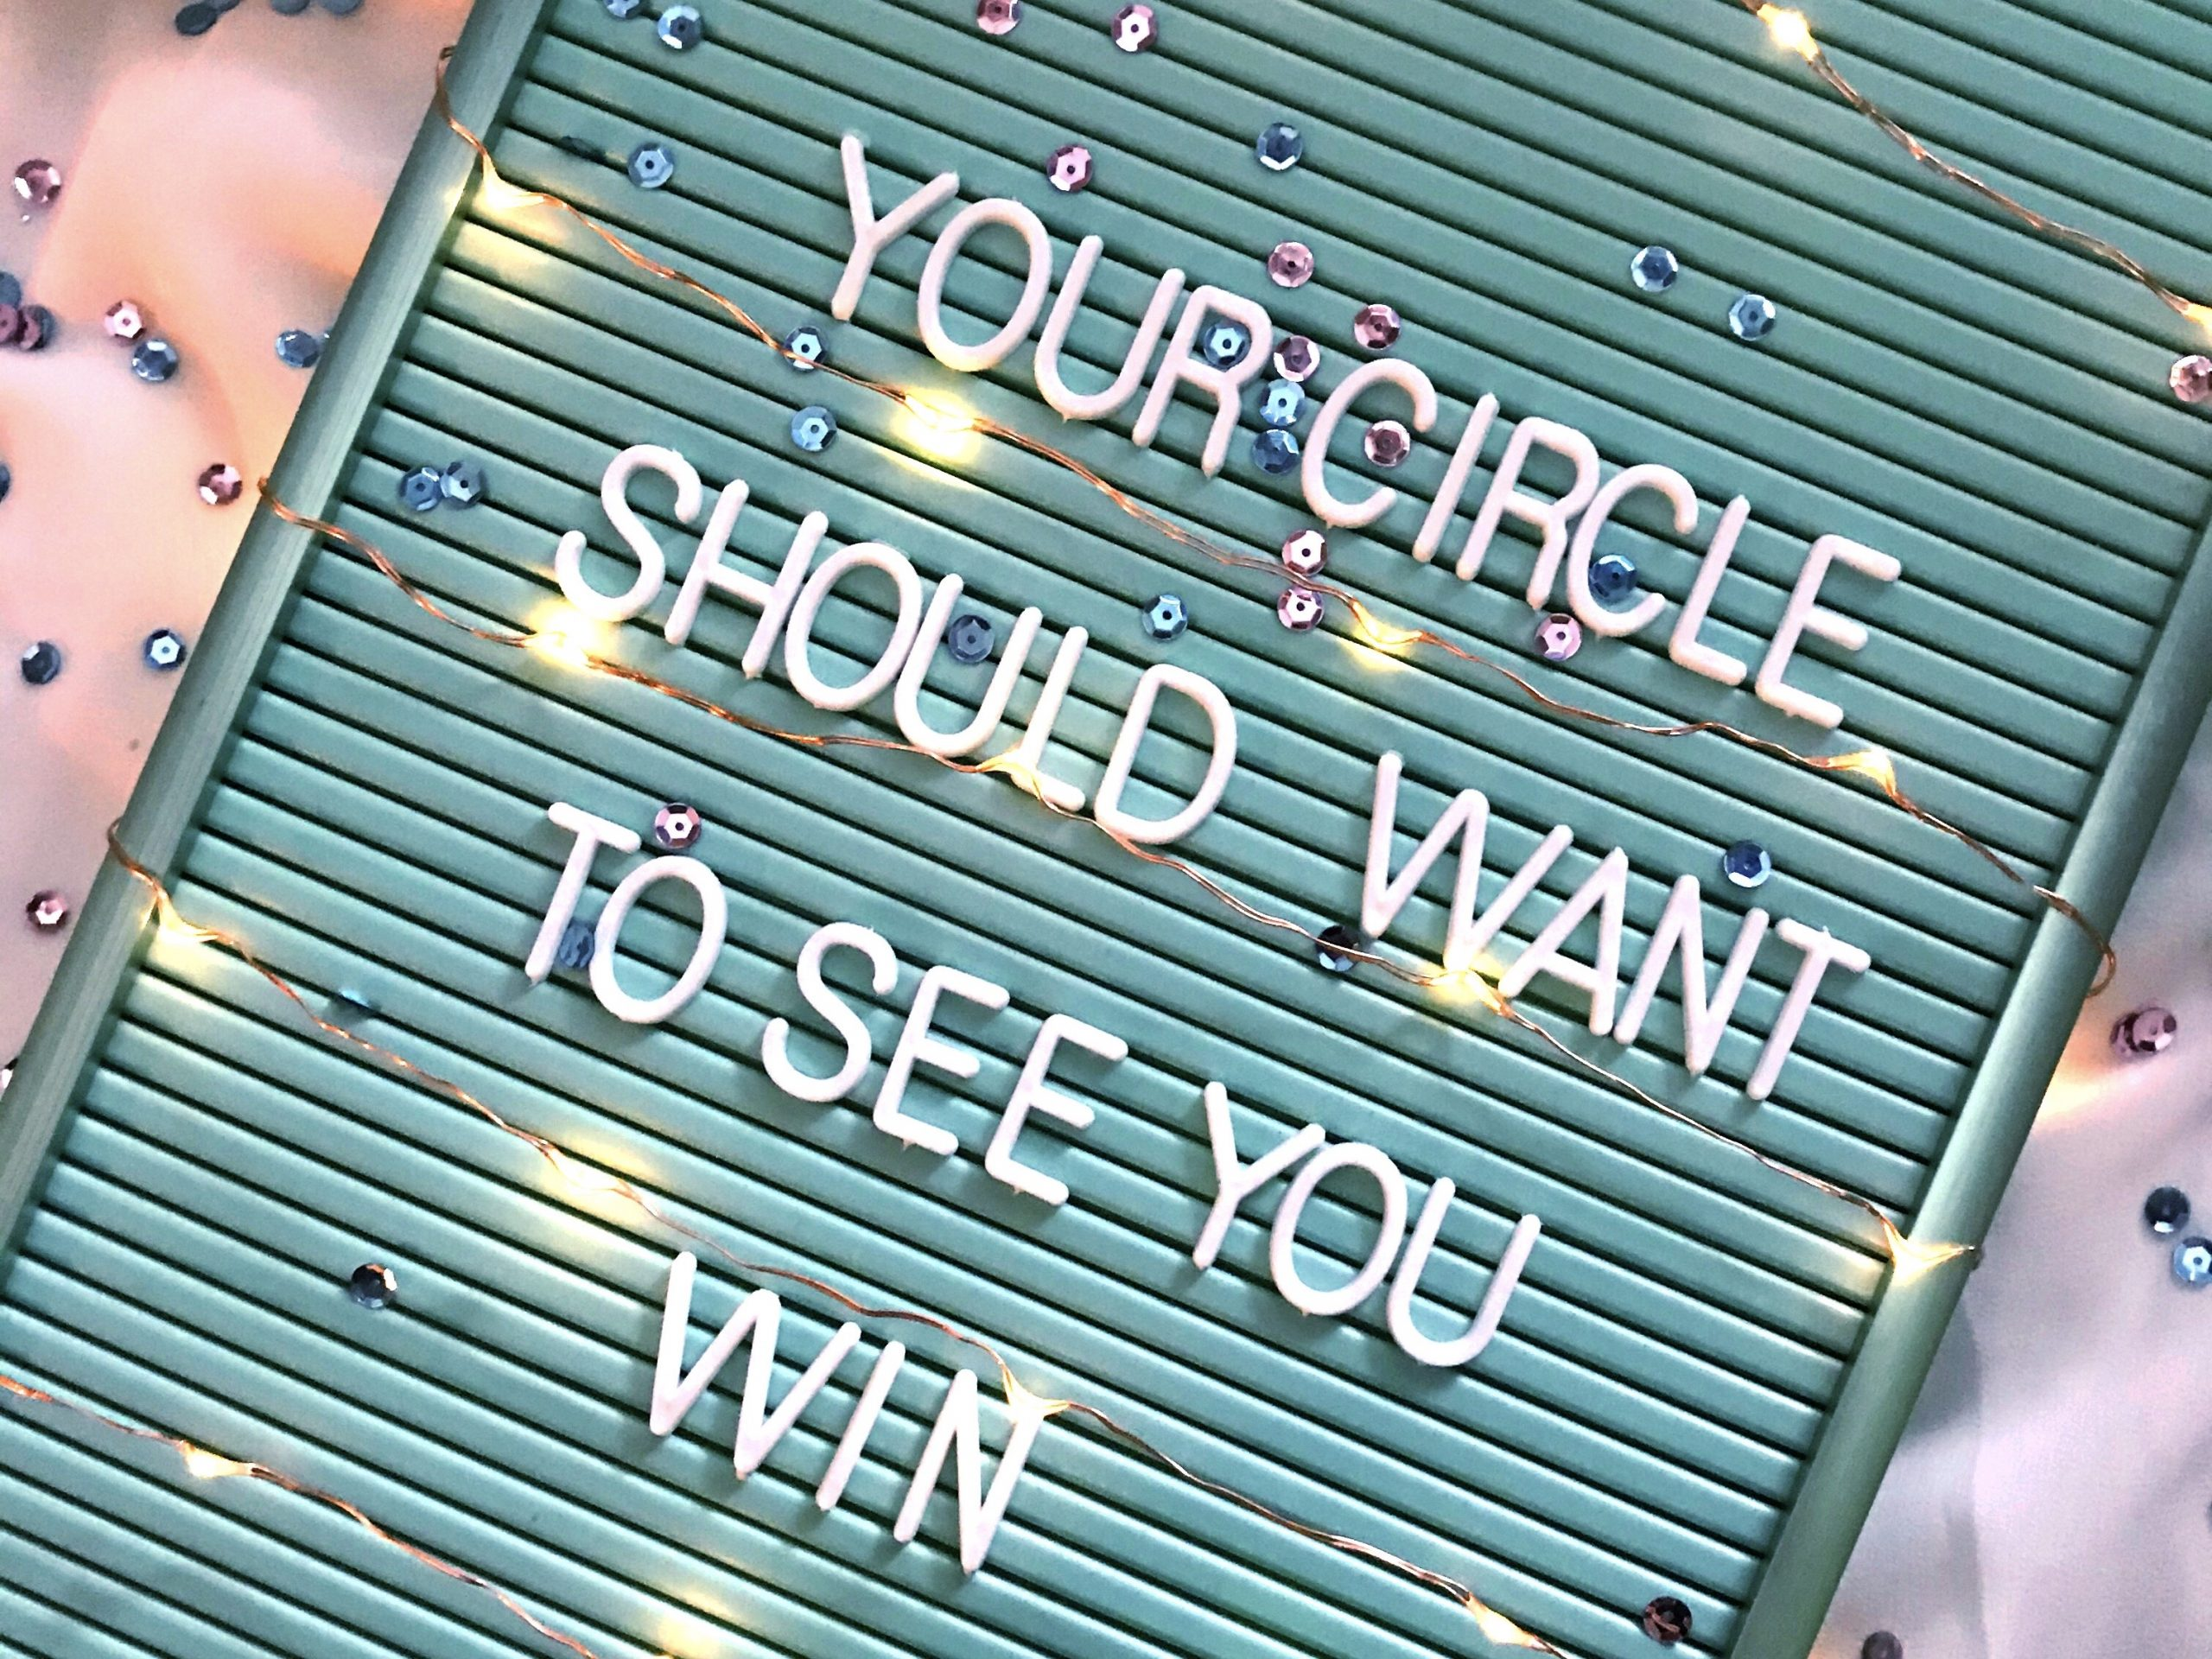 Your circle should want to see you win. IJVR blog over omgaan met demotiverende mensen.